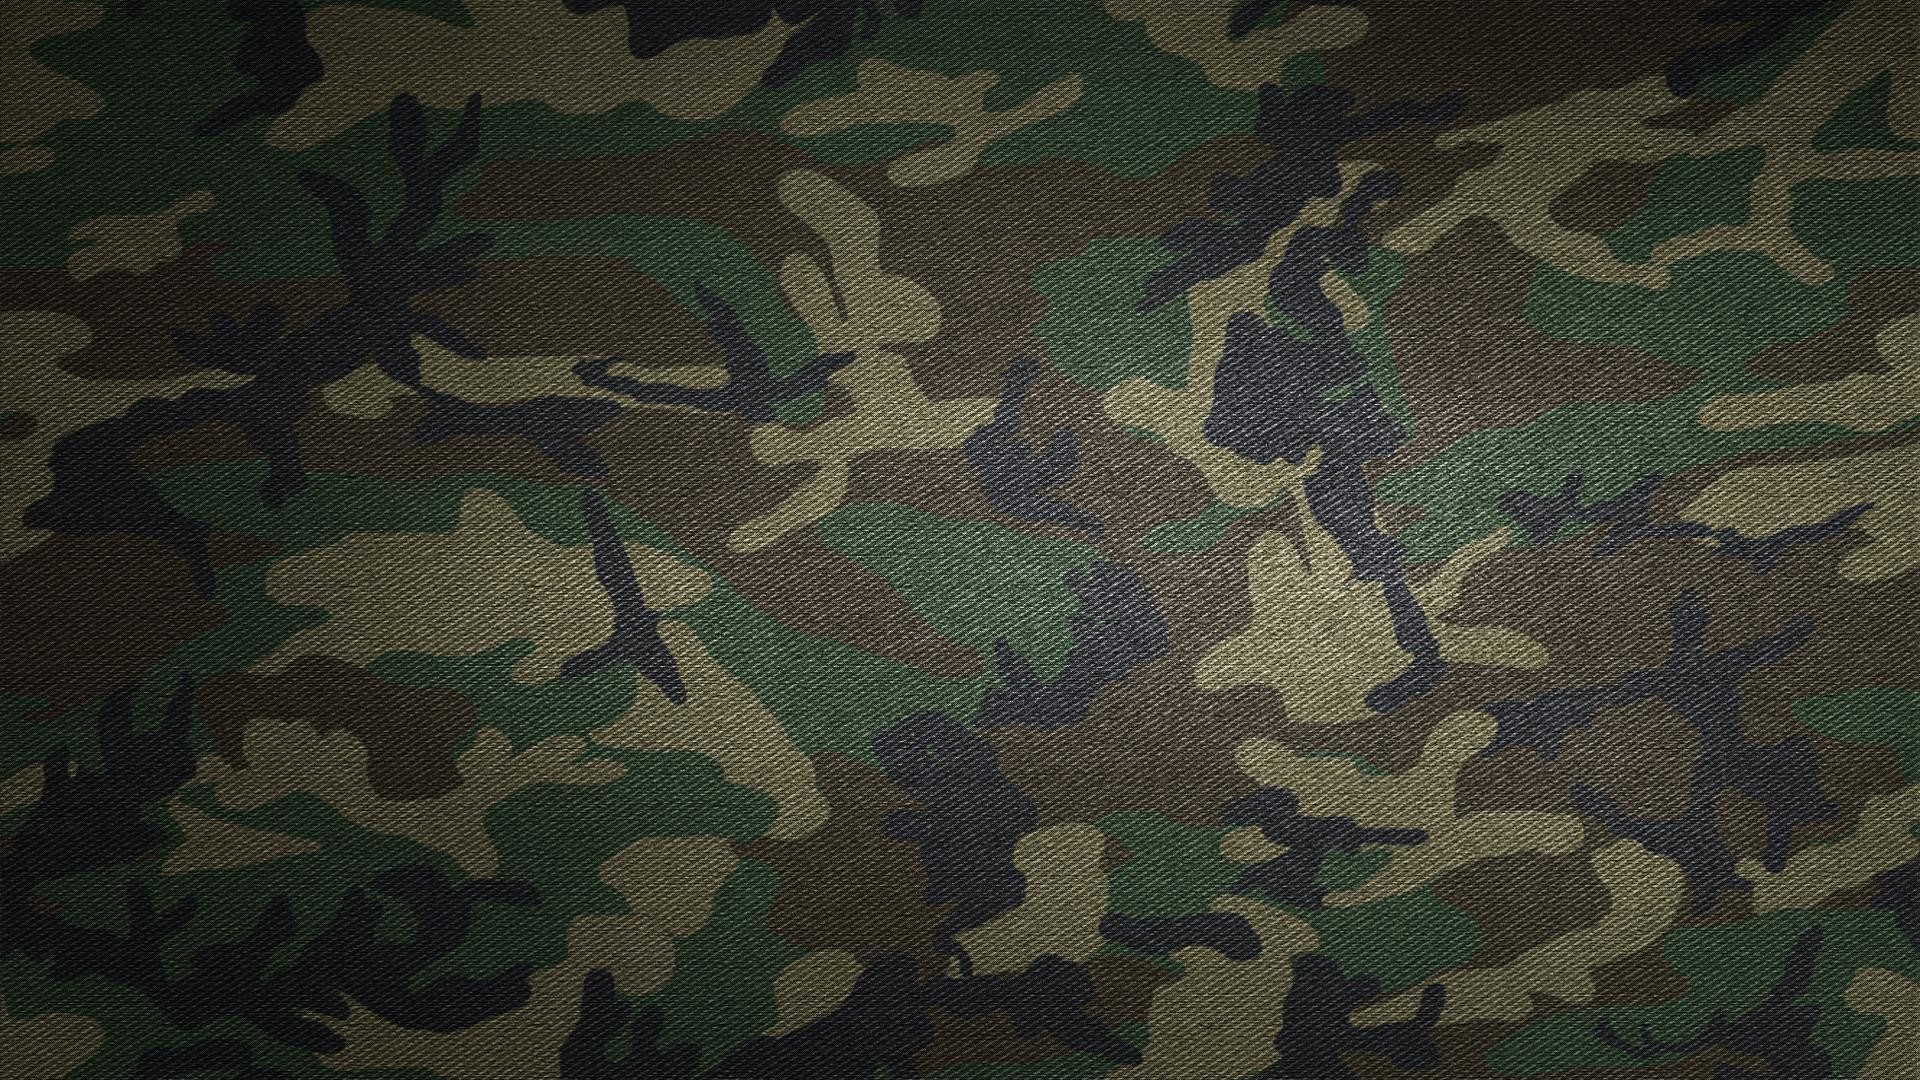 1920x1080 Camo High Quality Wallpaper - HD Wallpapers